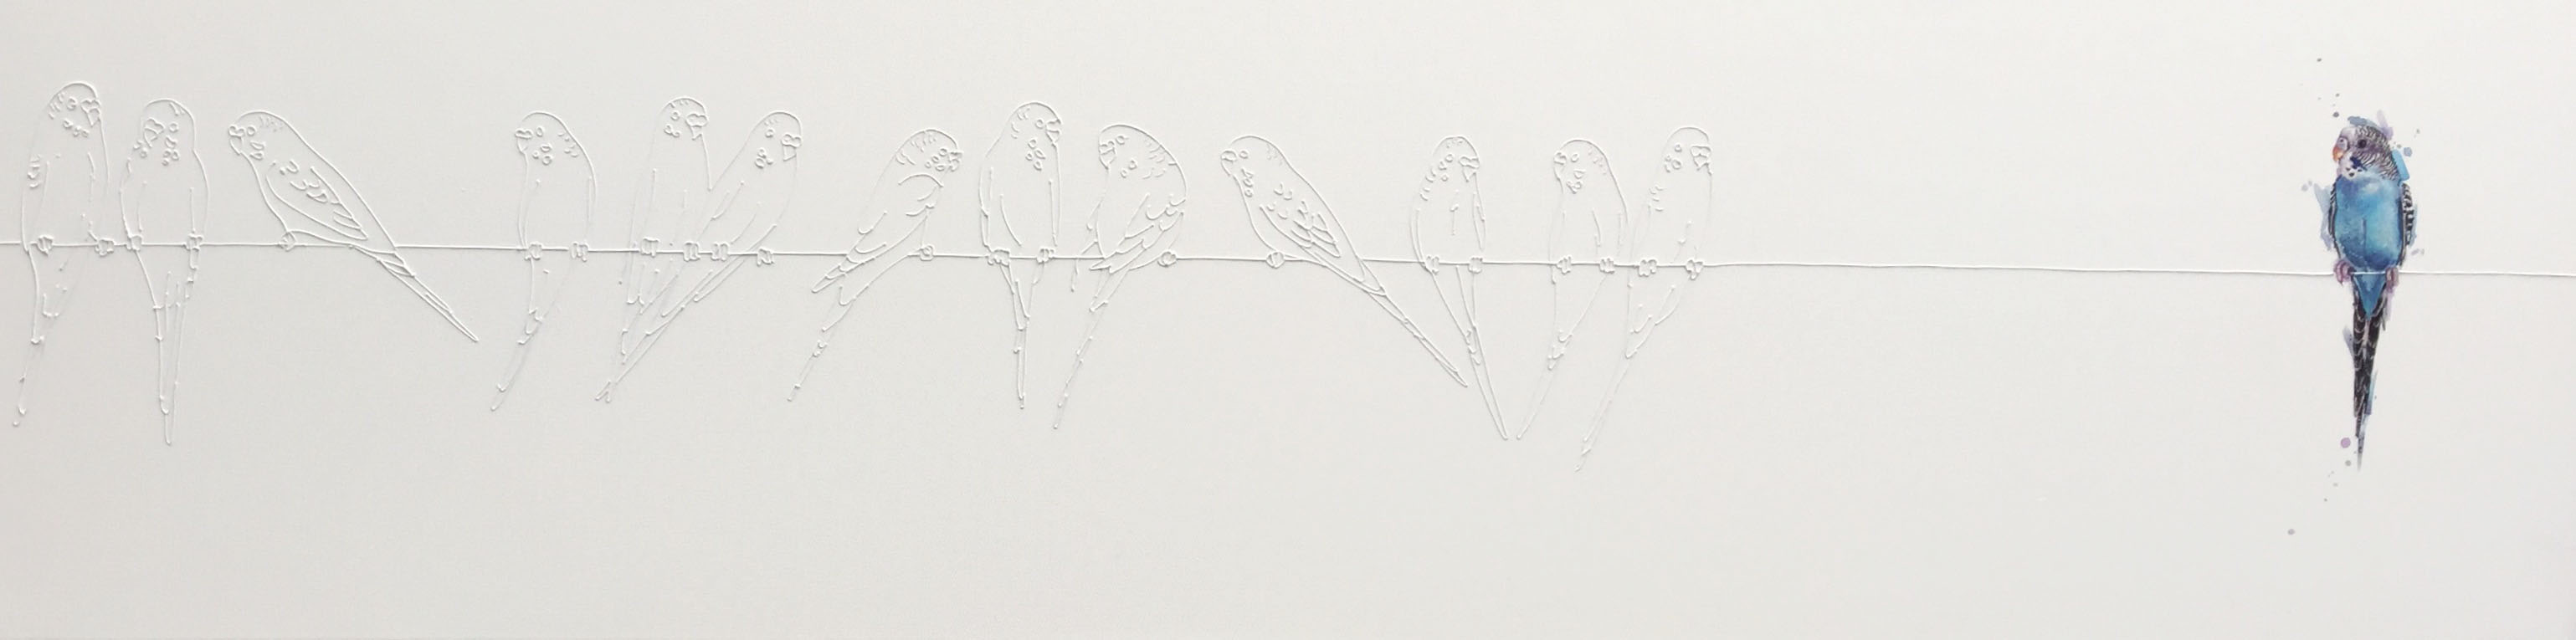 Budgies on a wire